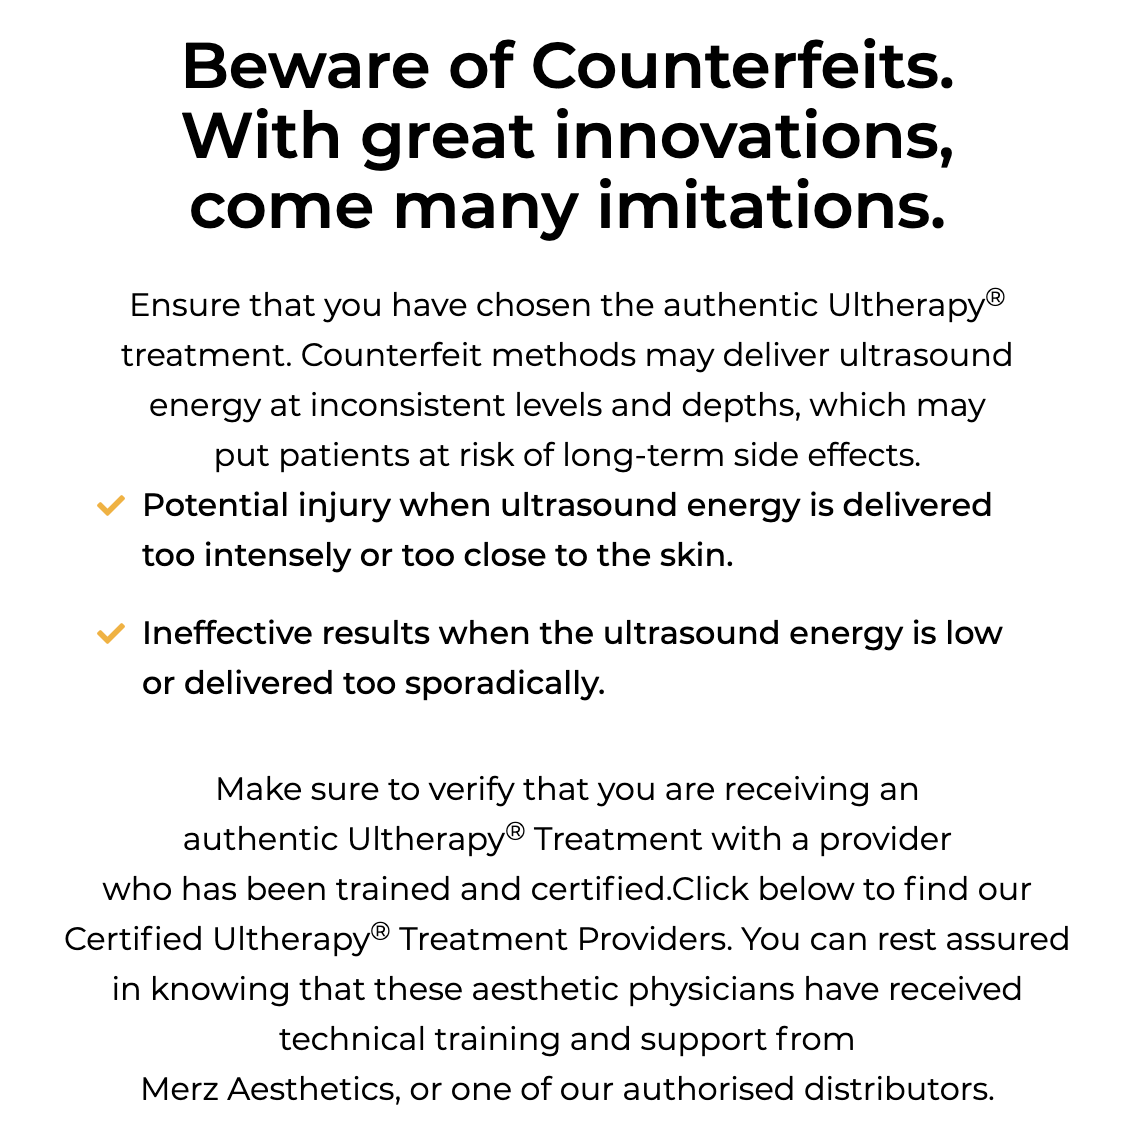 Beware of counterfeits versions of Safe and non-invasive Ultherapy® in Singapore